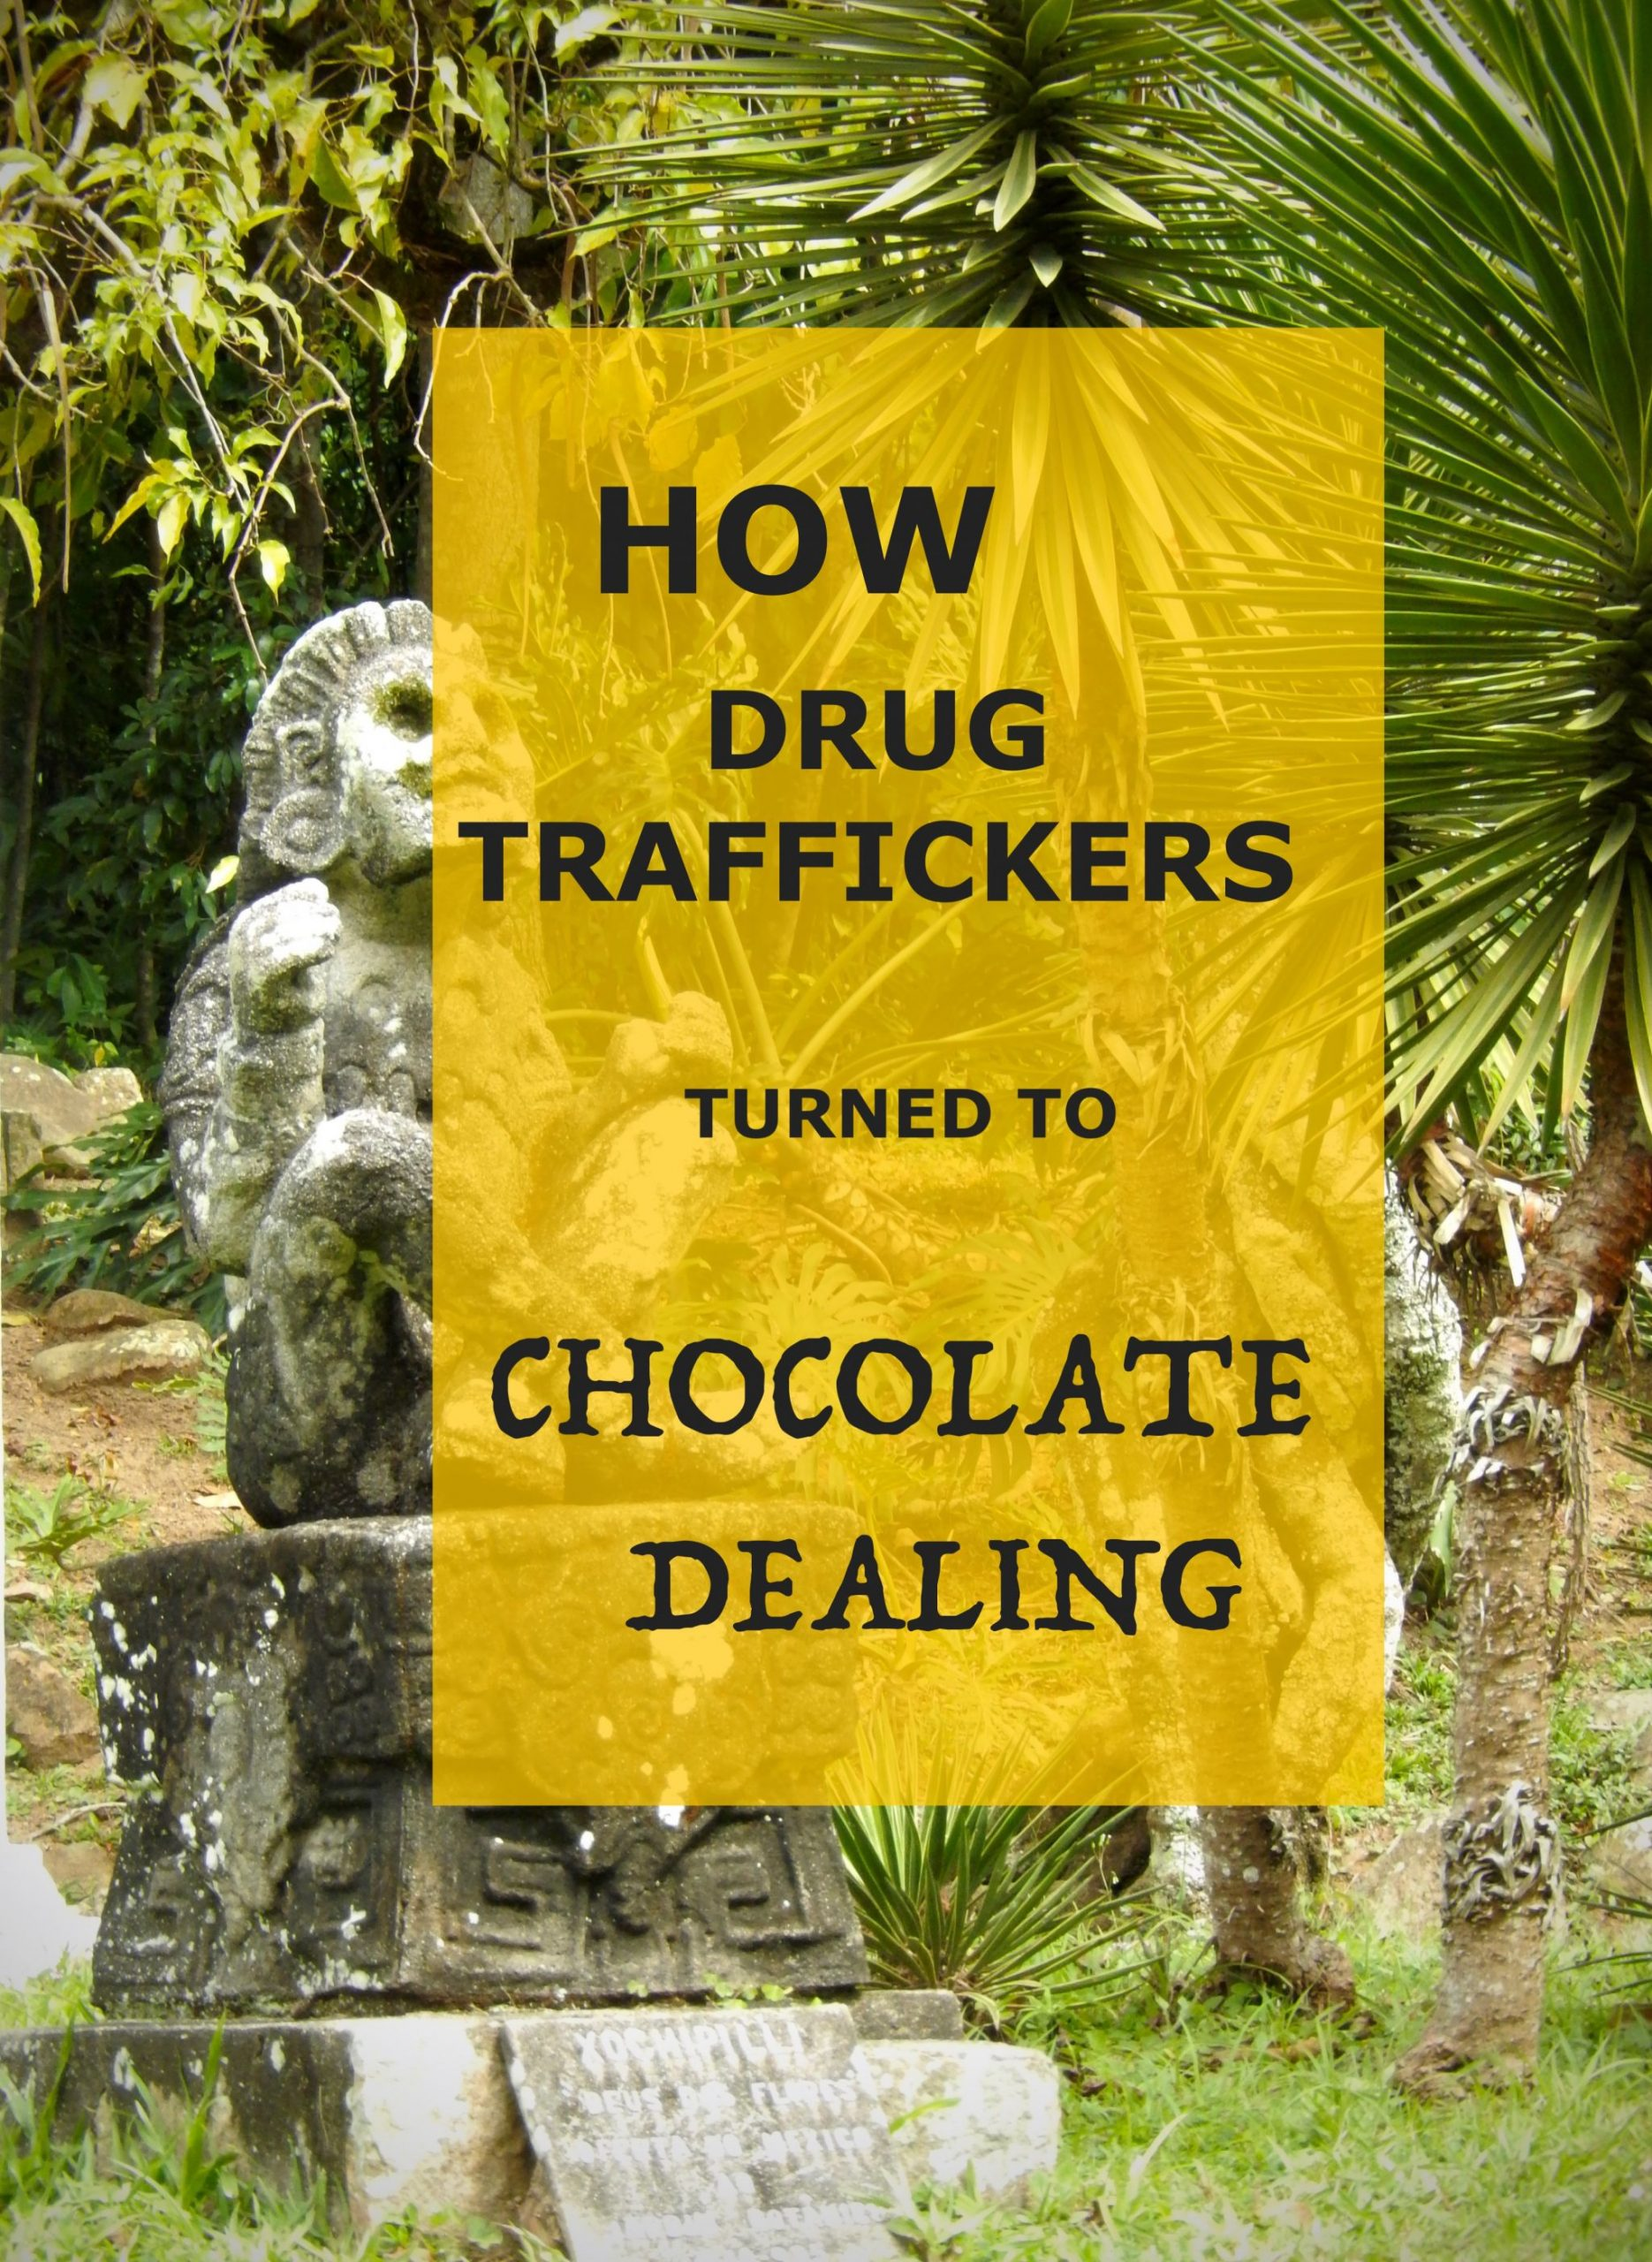 Pinable image on how drug traffickers began chocolate dealing